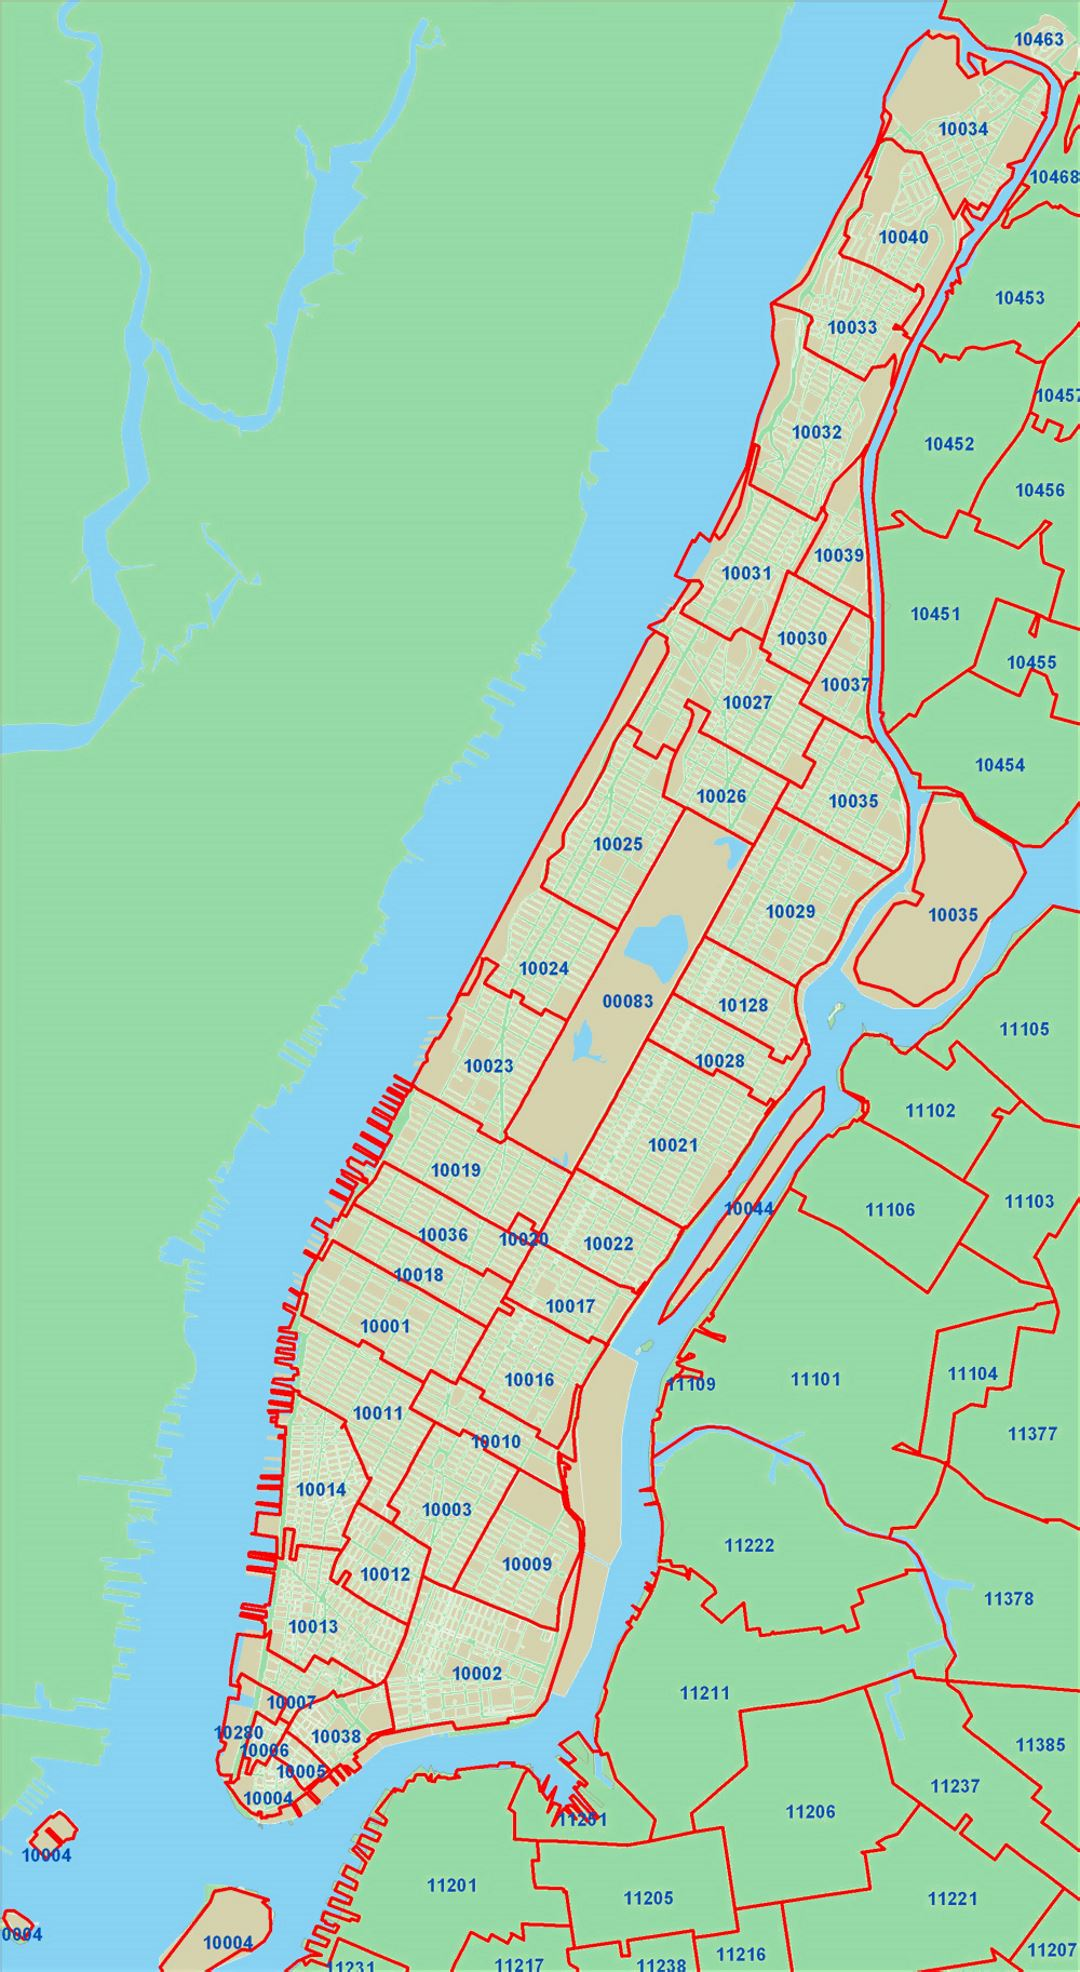 Detailed zip codes map of New York city New York USA United